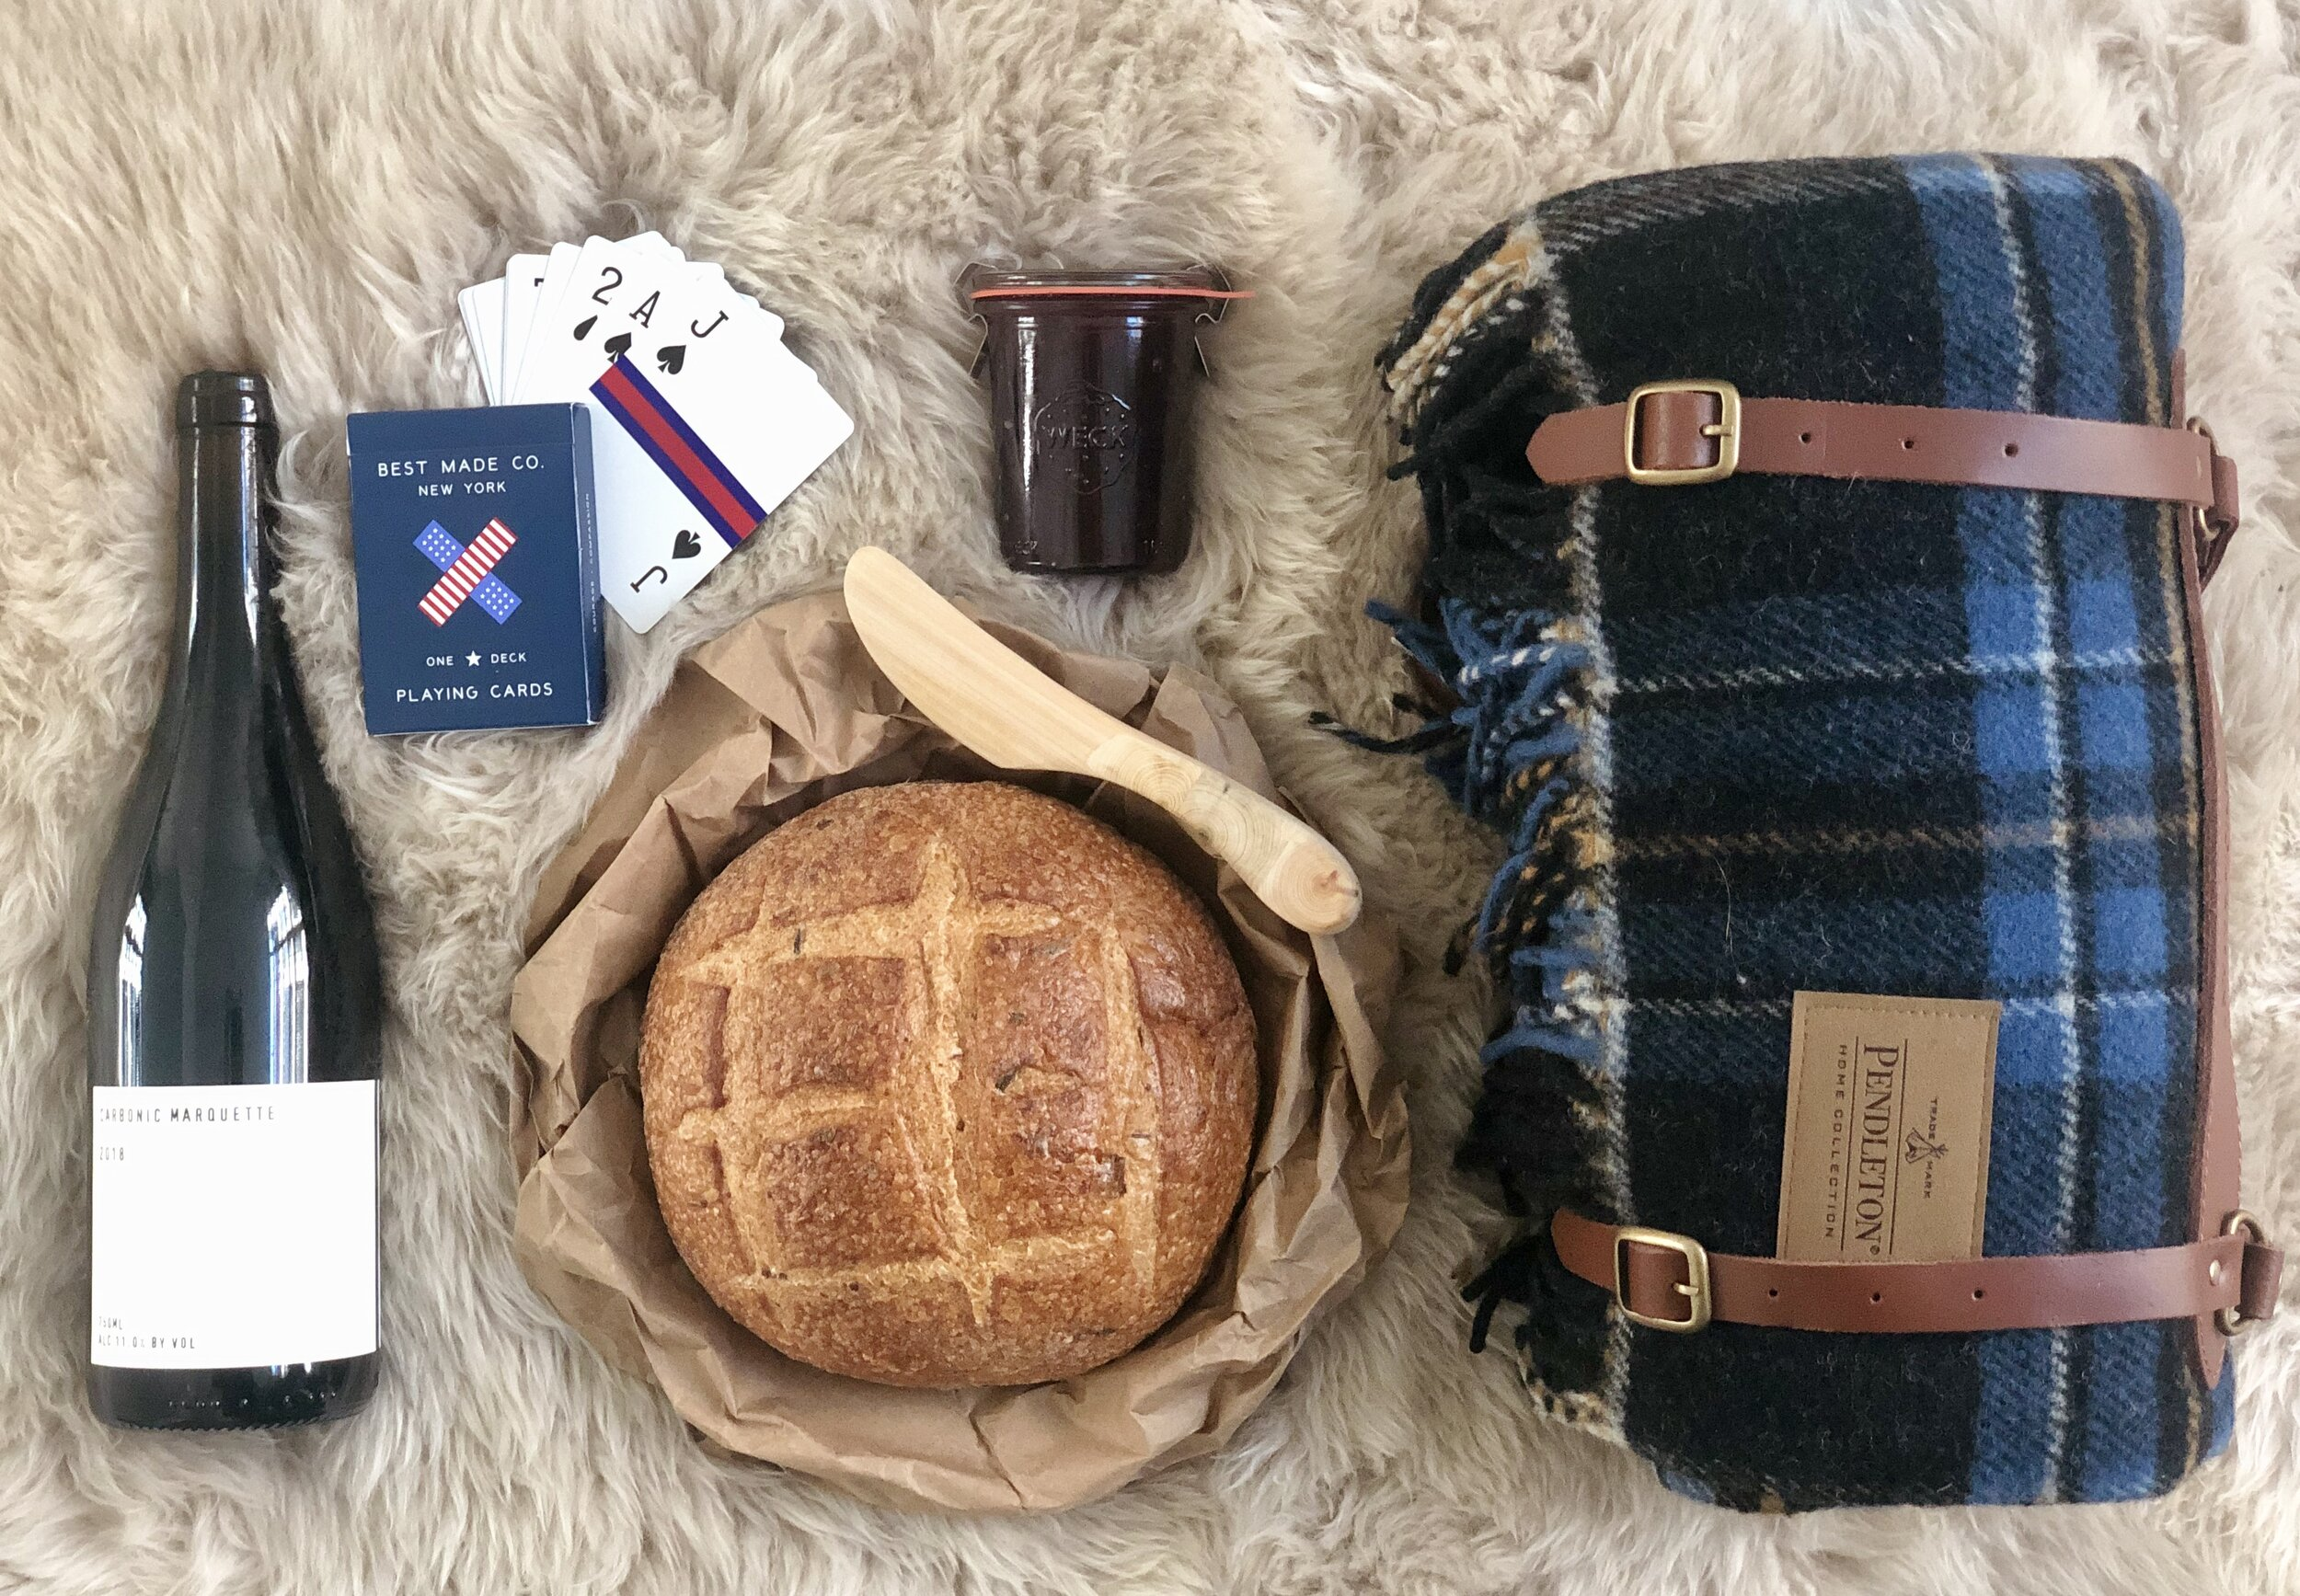 Wild Arc Farm wine  ,   Best Made Co. Playing Cards  ,   Weck Glass Jar   ,    Fittsmile Wooden Spreader  ,   Pendleton Motor Robe With Leather Carrier